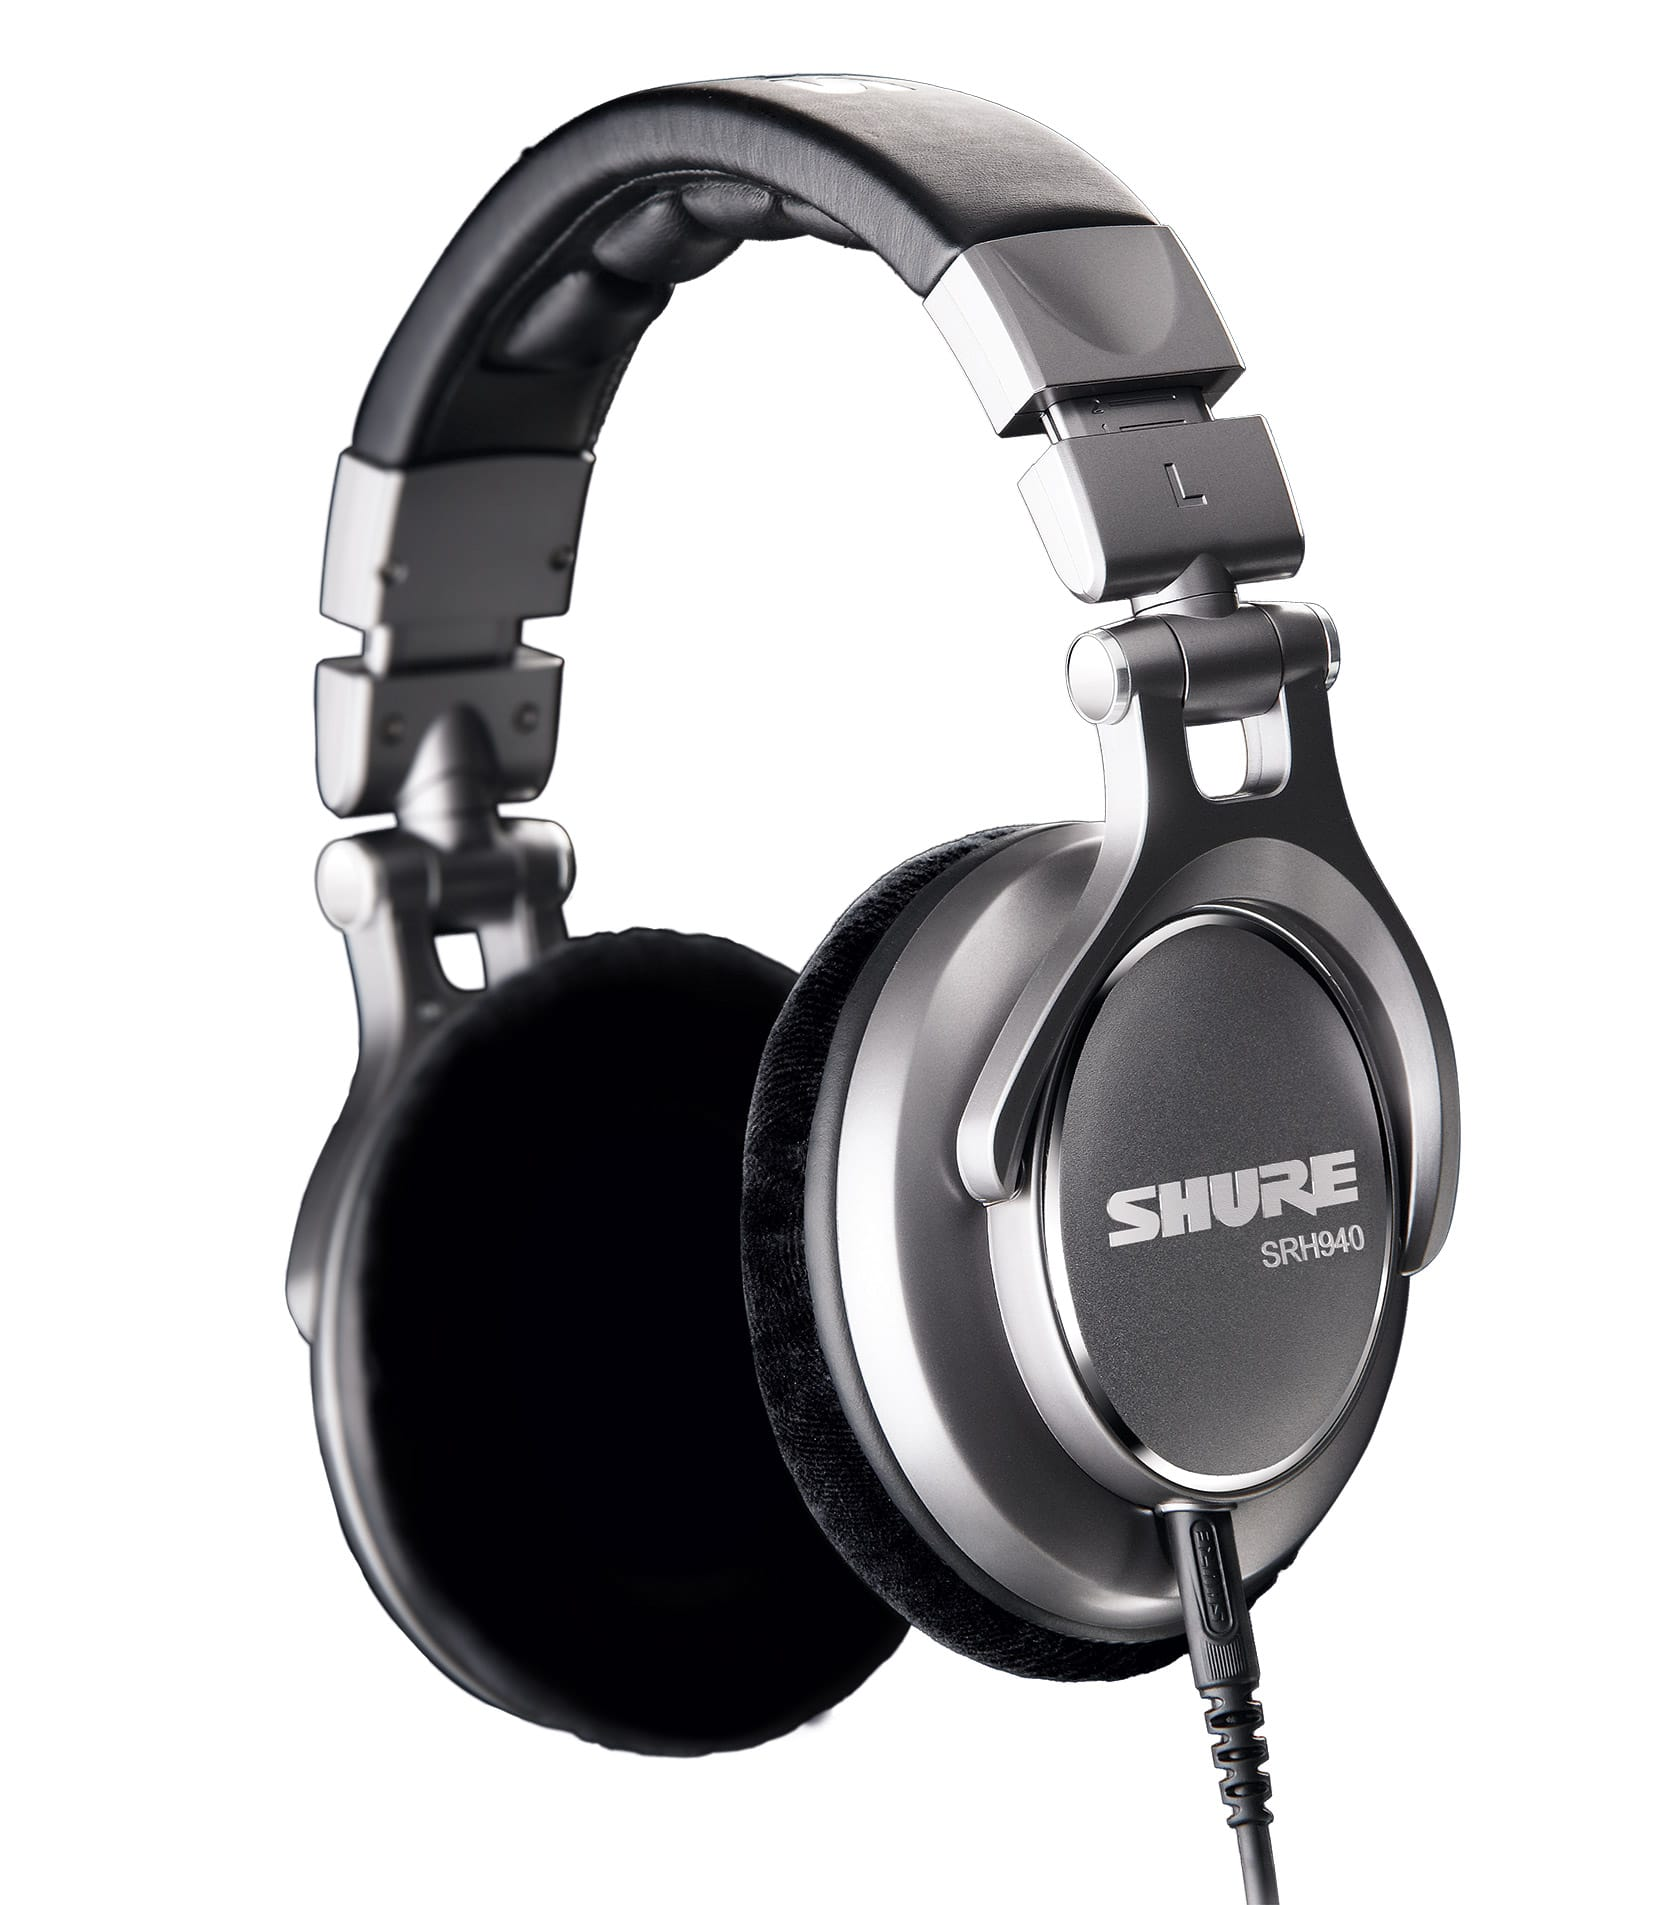 SRH940 E Professional Reference Headphones